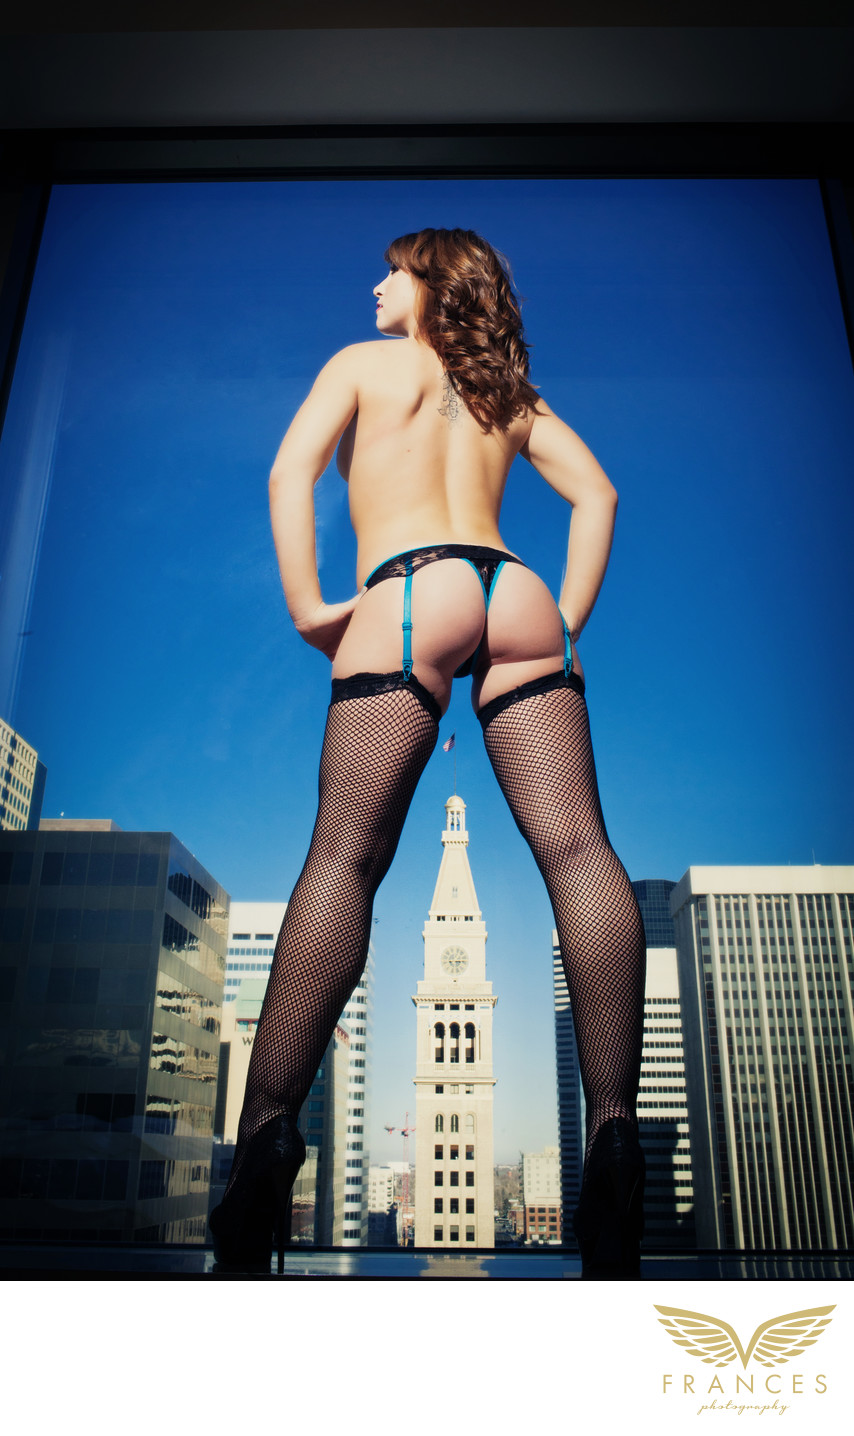 Adventurous confident city woman Denver boudoir